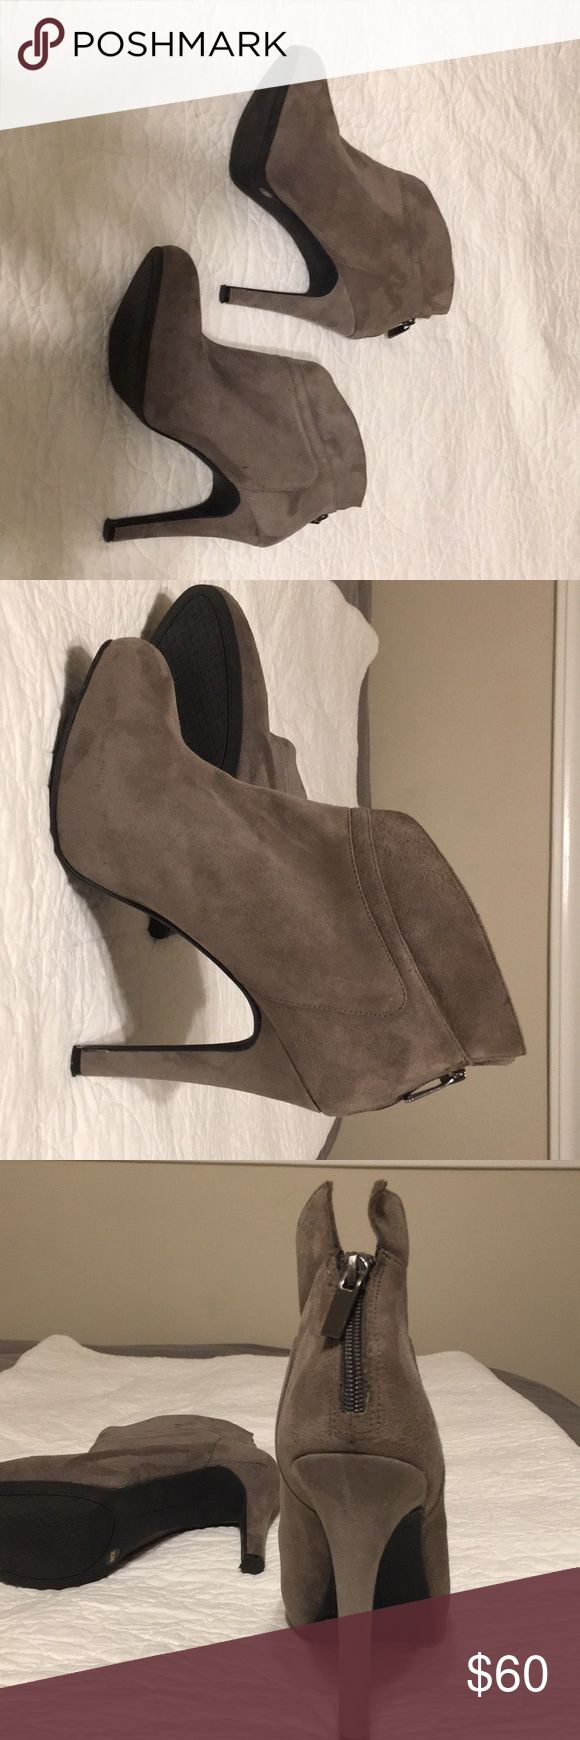 Jessica Simpson Aggie suede grey ankle booties These are lovely and versatile grey suede booties from Jessica Simpson's line. I purchased them at Nordstrom. They have never been worn (can't find the box though). They are in great condition as I have stored them. If you have any questions, ask away!! Jessica Simpson Shoes Ankle Boots & Booties